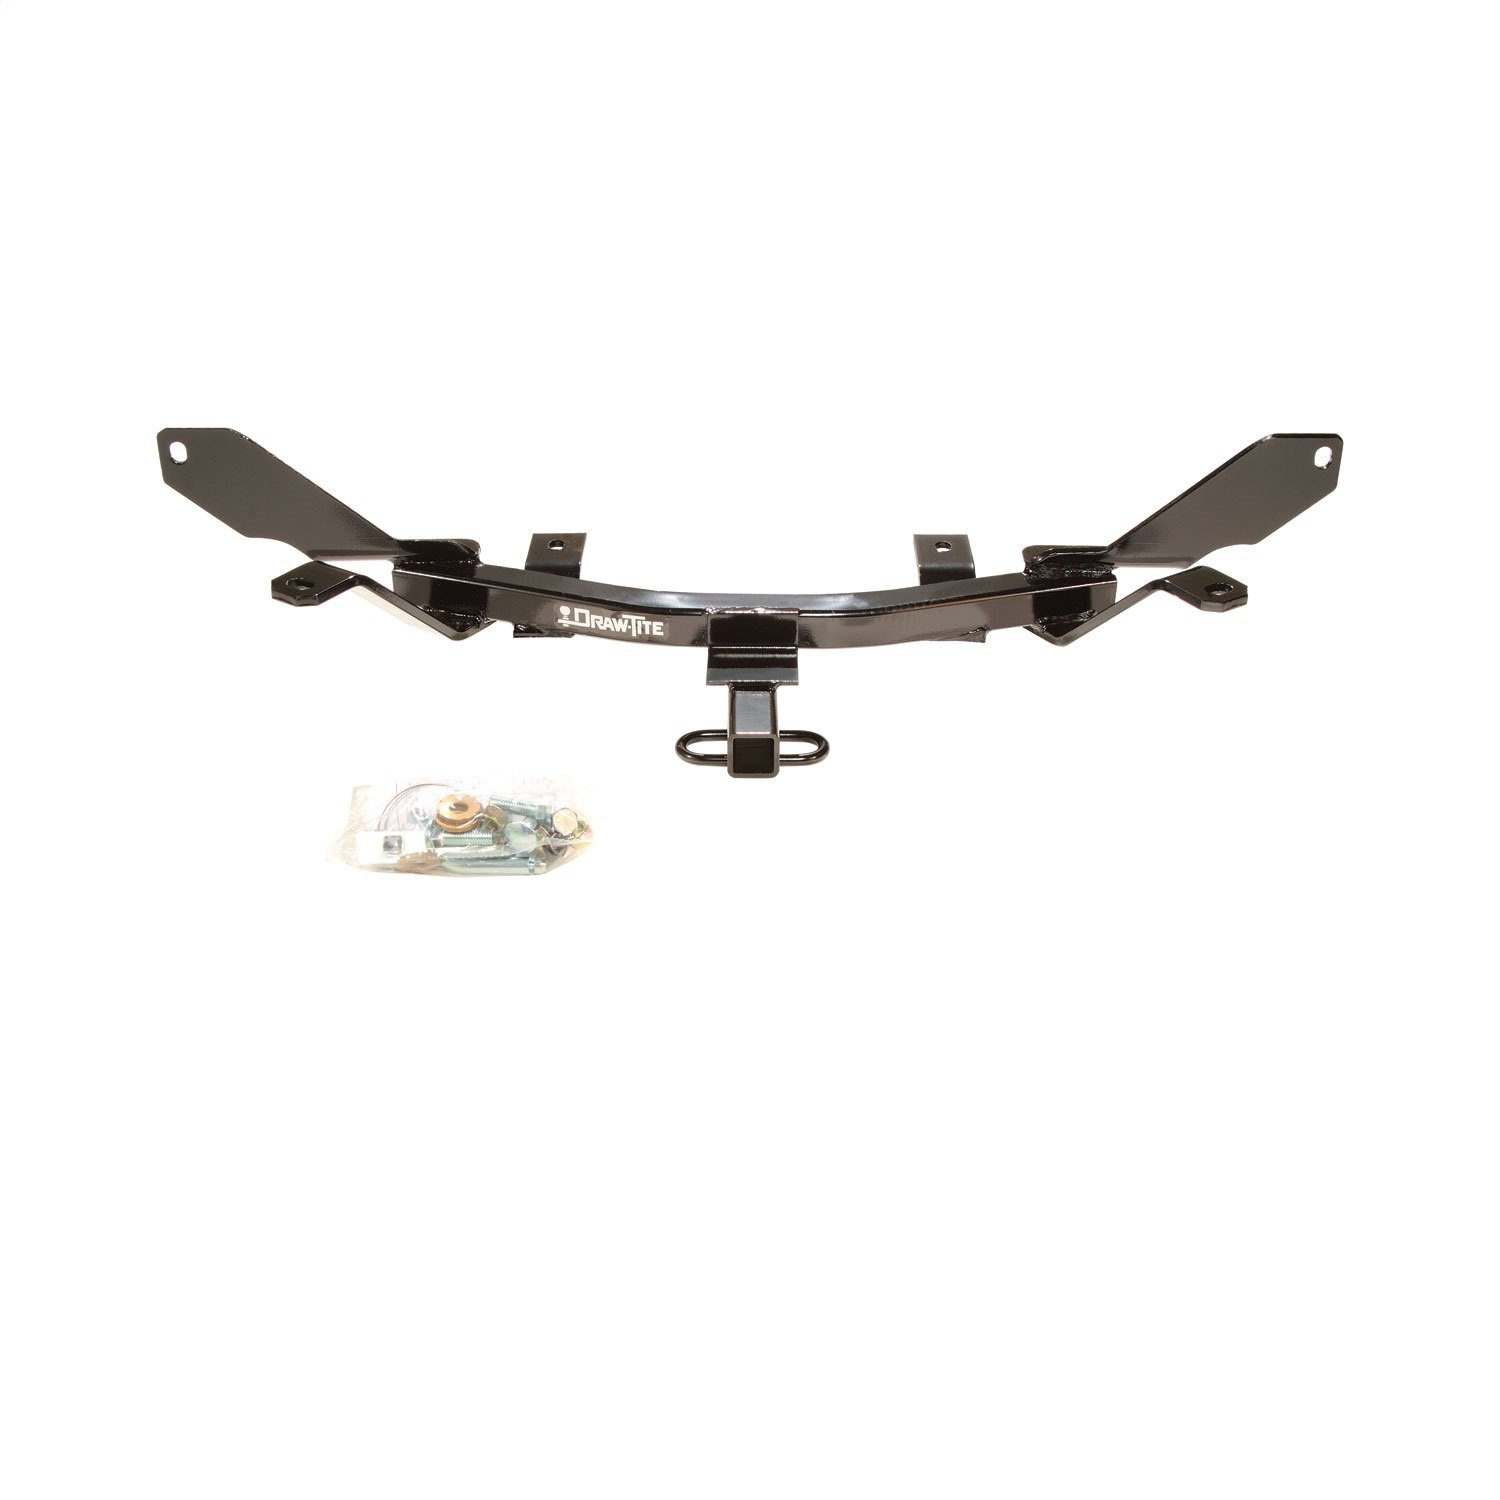 Draw-Tite 24775 Class I Sportframe Hitch with 1-1//4 Square Receiver Tube Opening